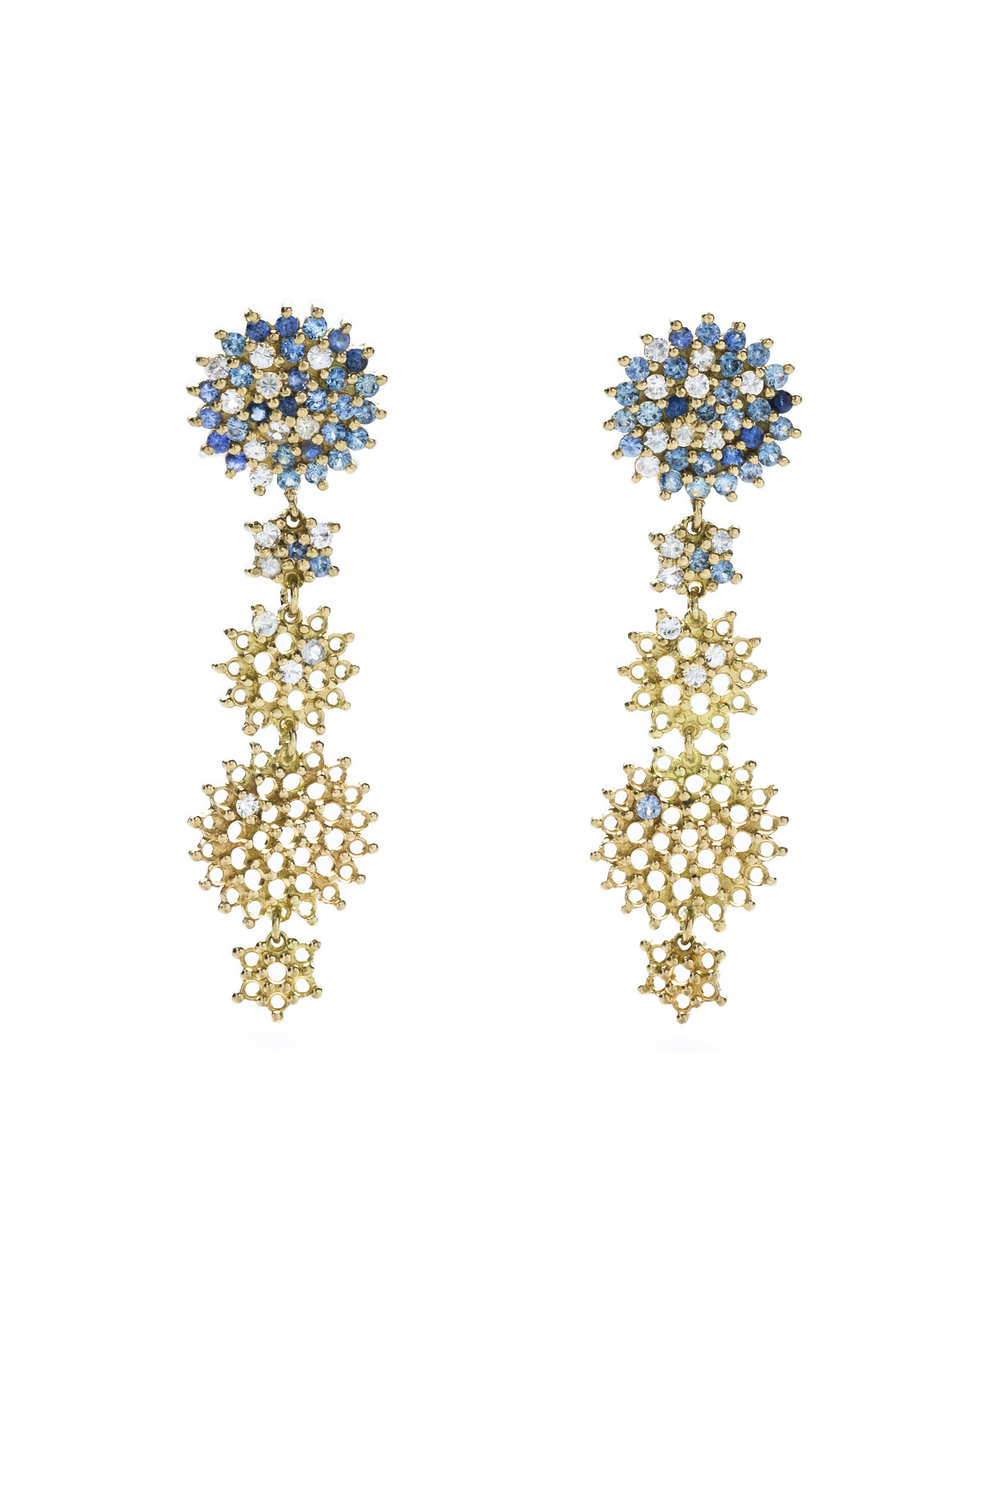 Multi coloured sapphire star chandelier earrings, £6400